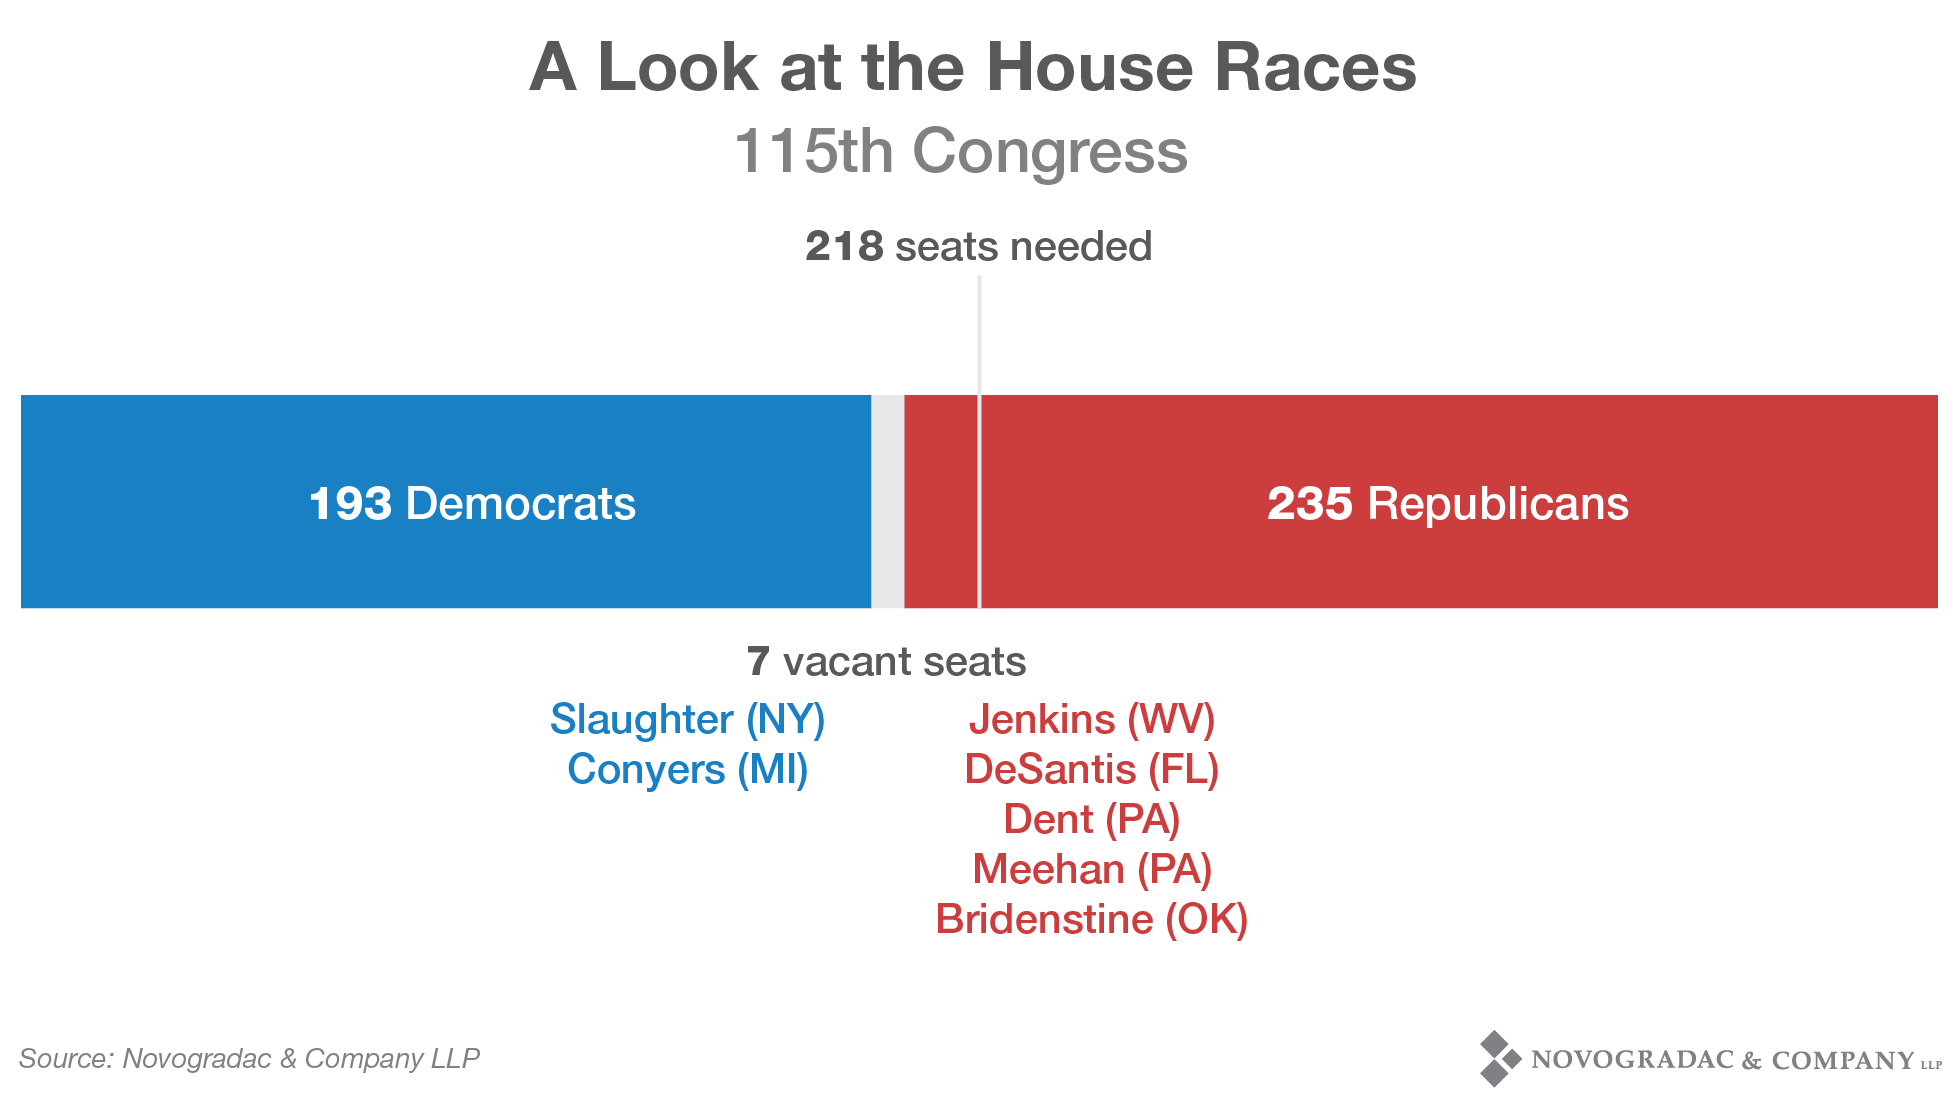 Blog Image 2018 Election A Look at the House Races